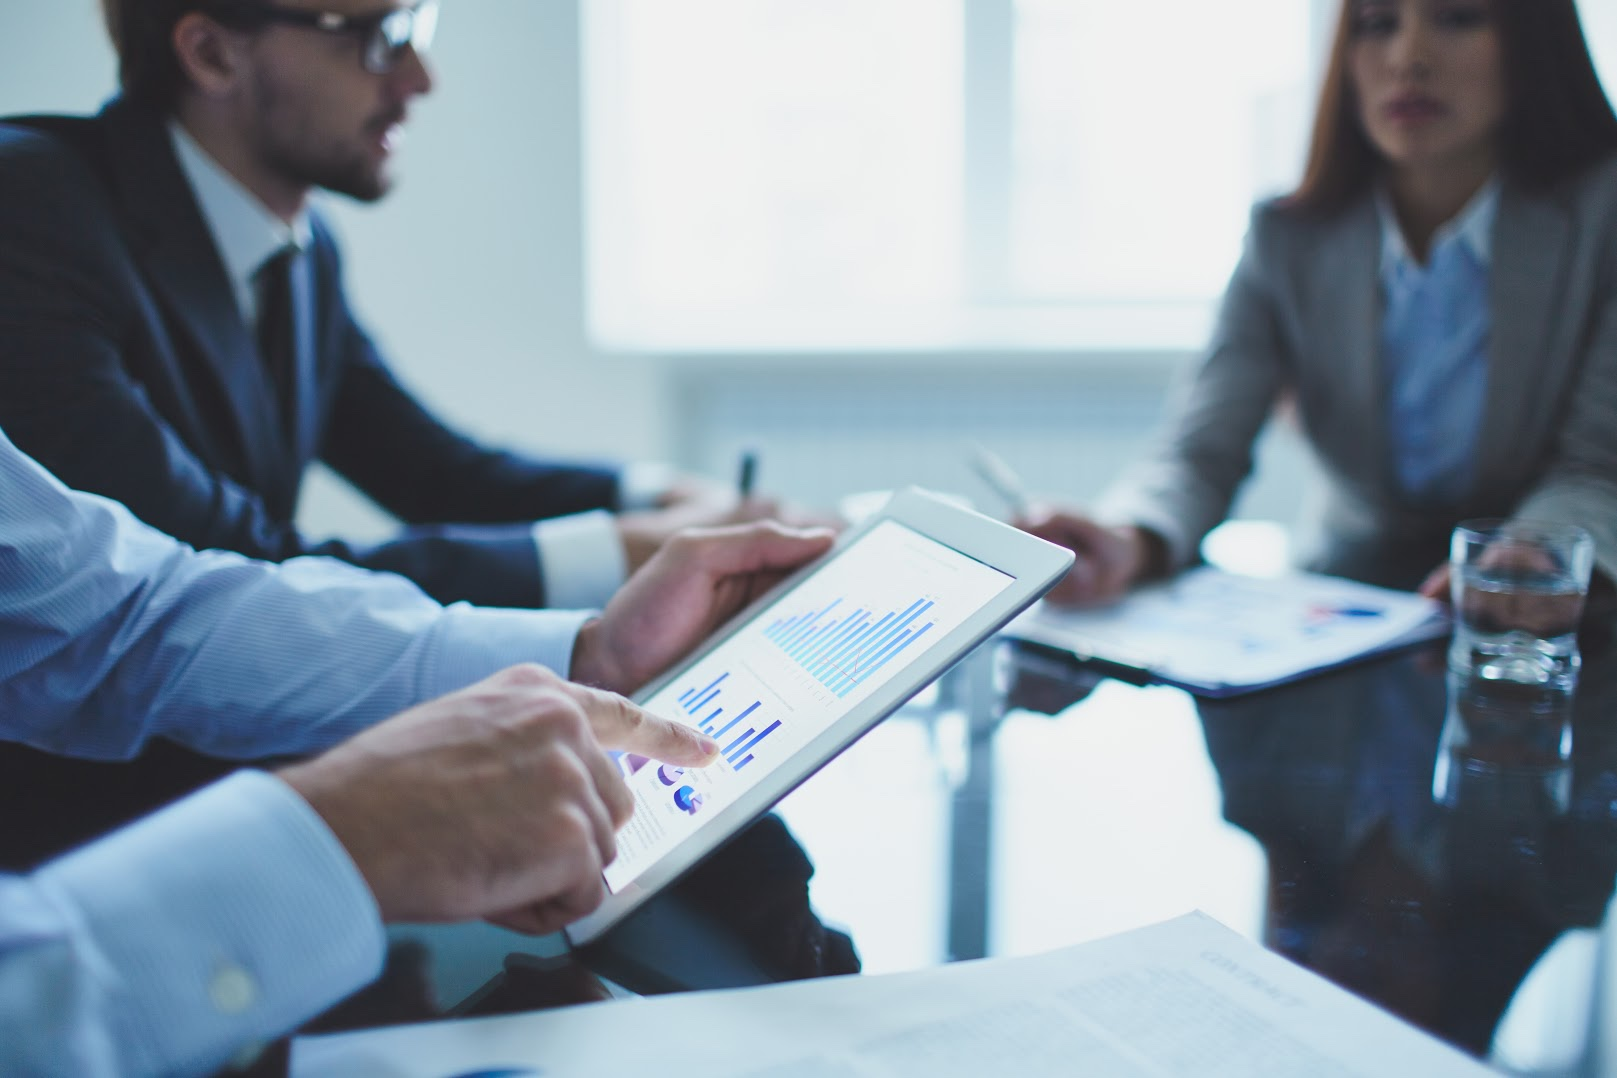 Role of iPad in Official Meetings and Corporate Events